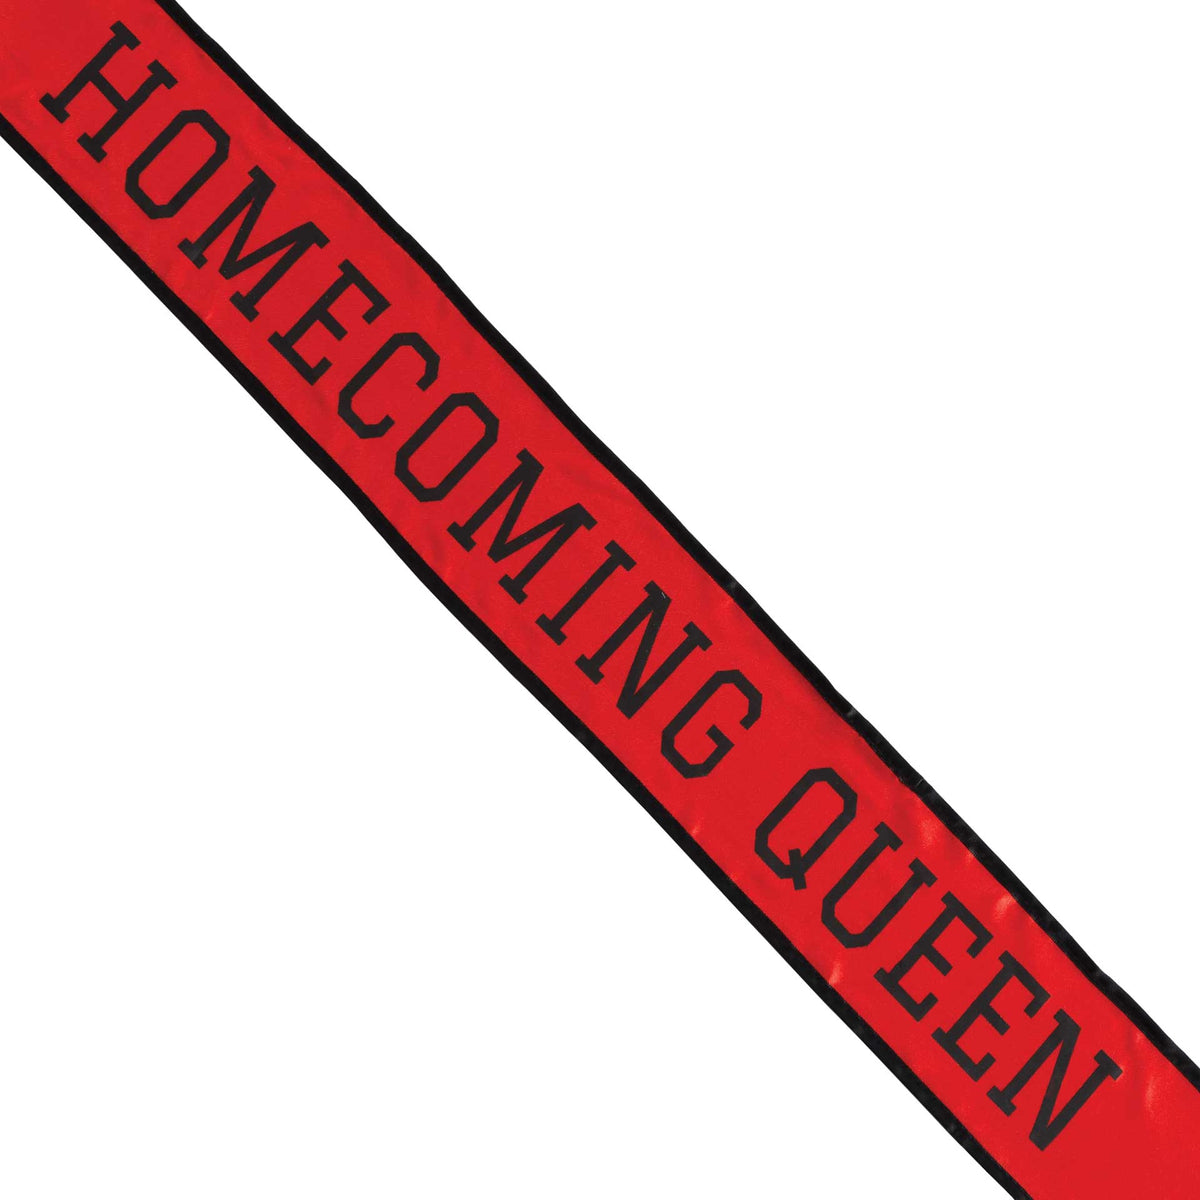 Red & Black School Color Homecoming Queen Sash